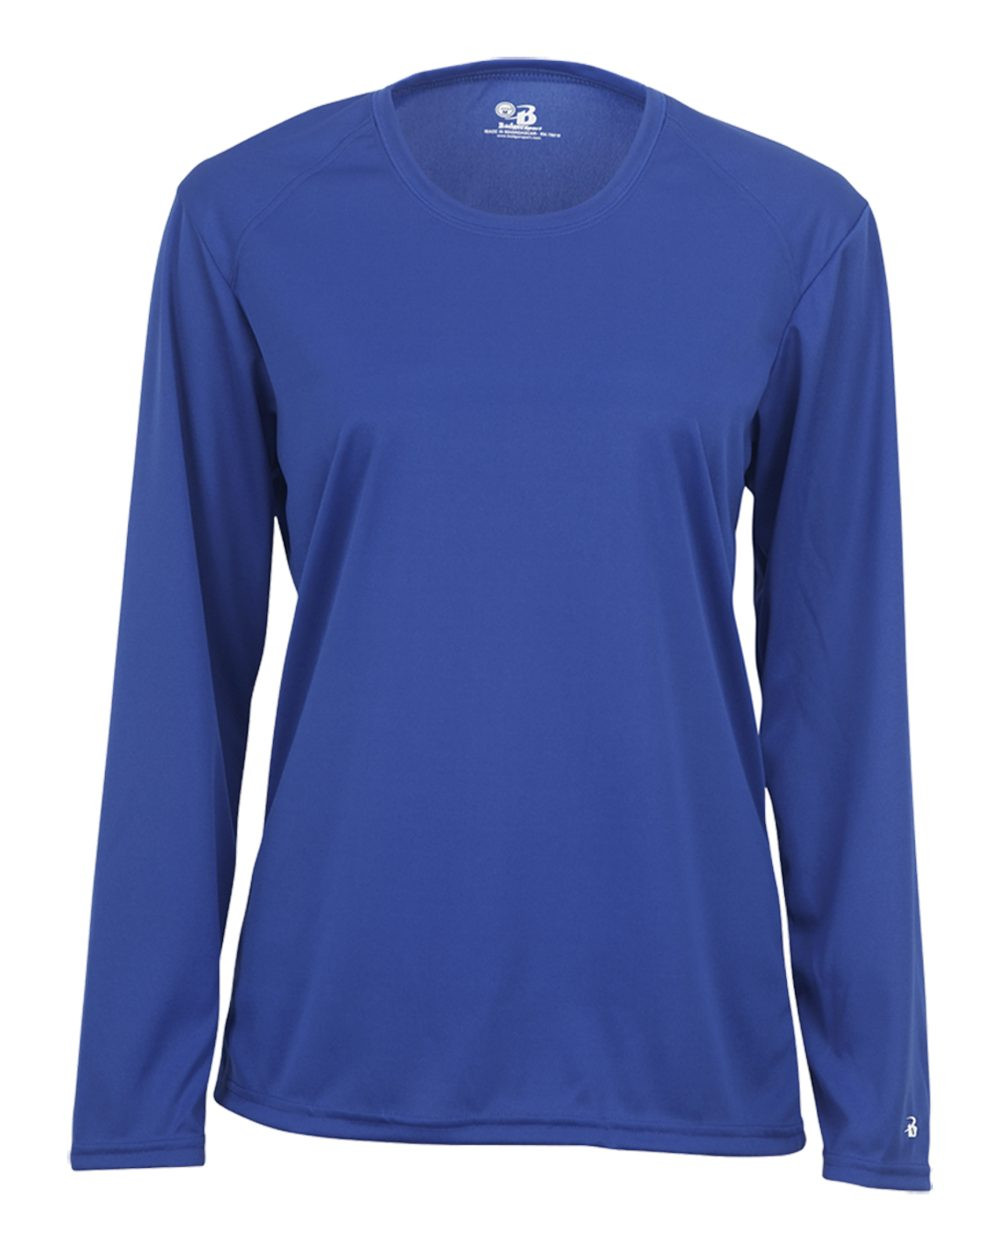 Badger Women's Core Long Sleeve Tee - Royal